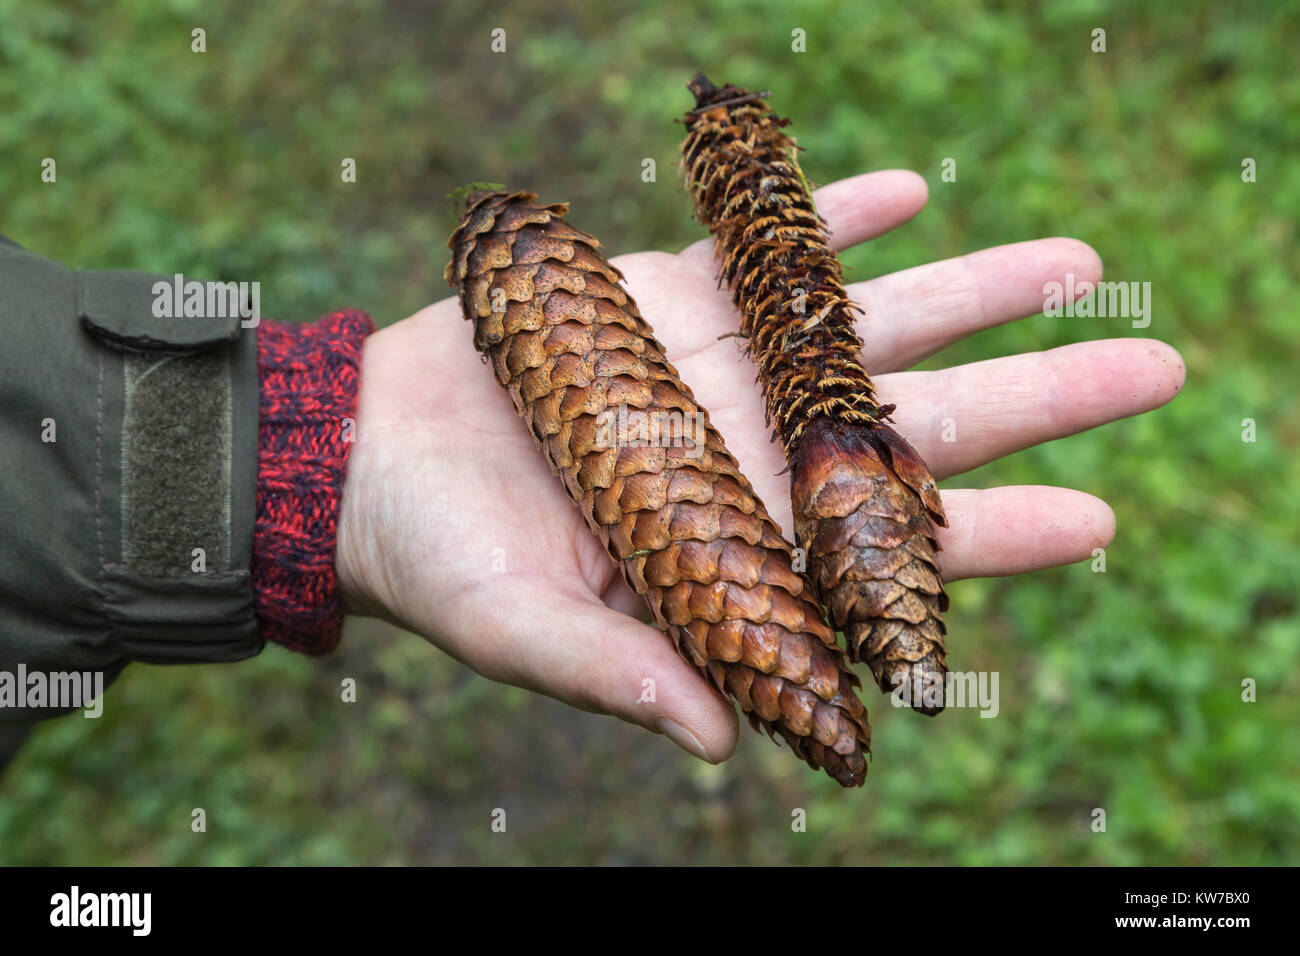 Norway spruce cones (Picea abies) showing one eaten by red squirrel (Sciurus vulgaris), Kielder Forest, Northumberland, - Stock Image